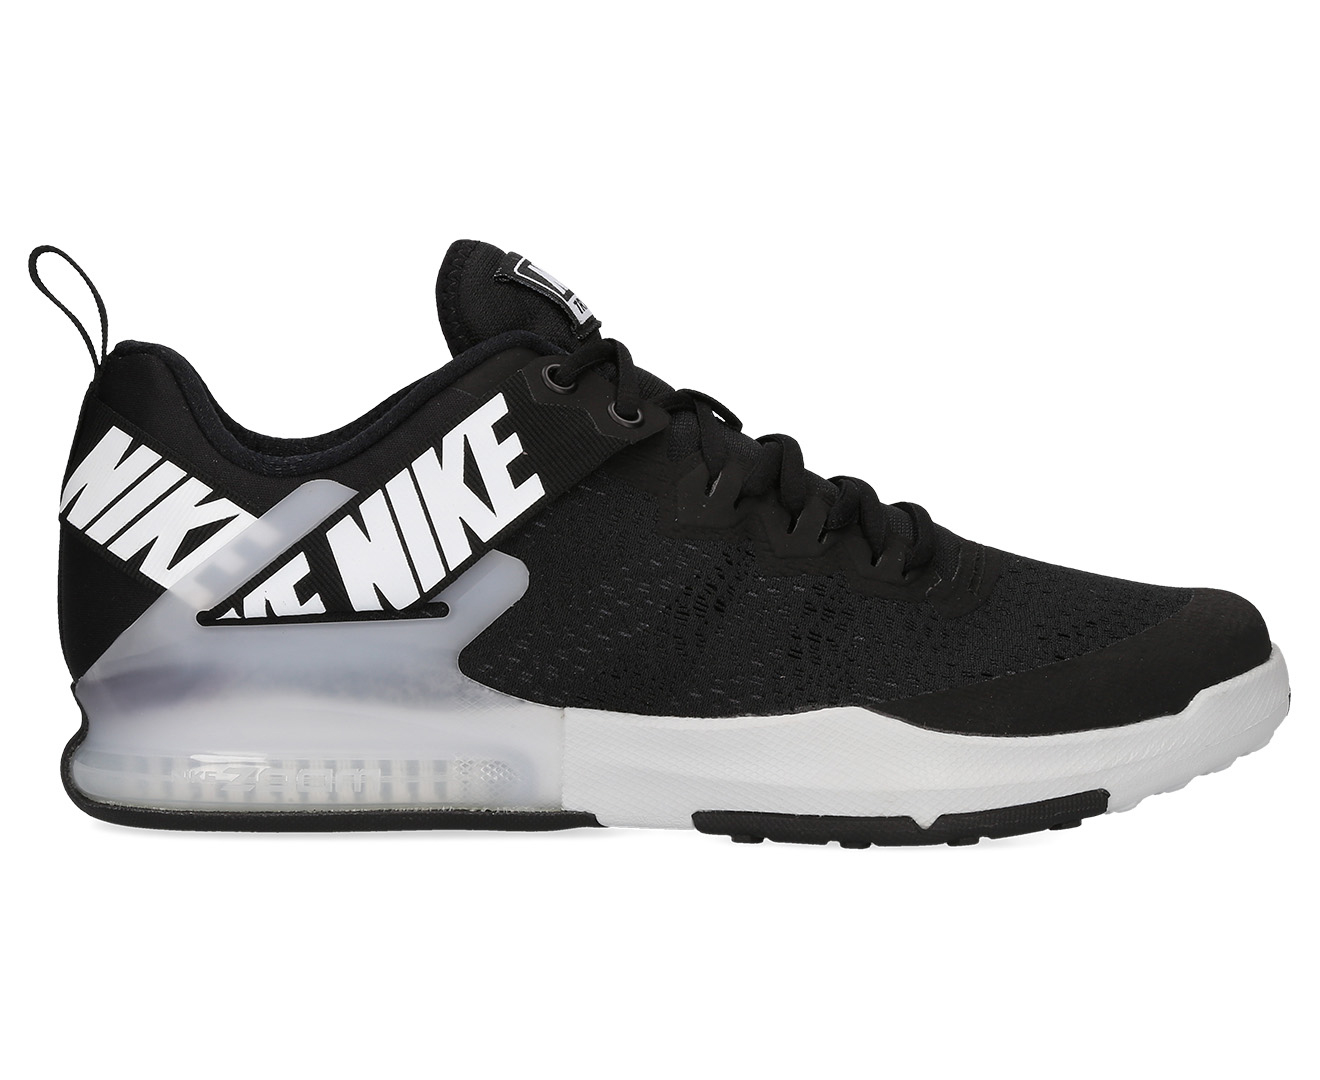 latest fashion special section elegant shoes Nike Men's Zoom Domination TR 2 Shoe - Black/White-Dark Grey